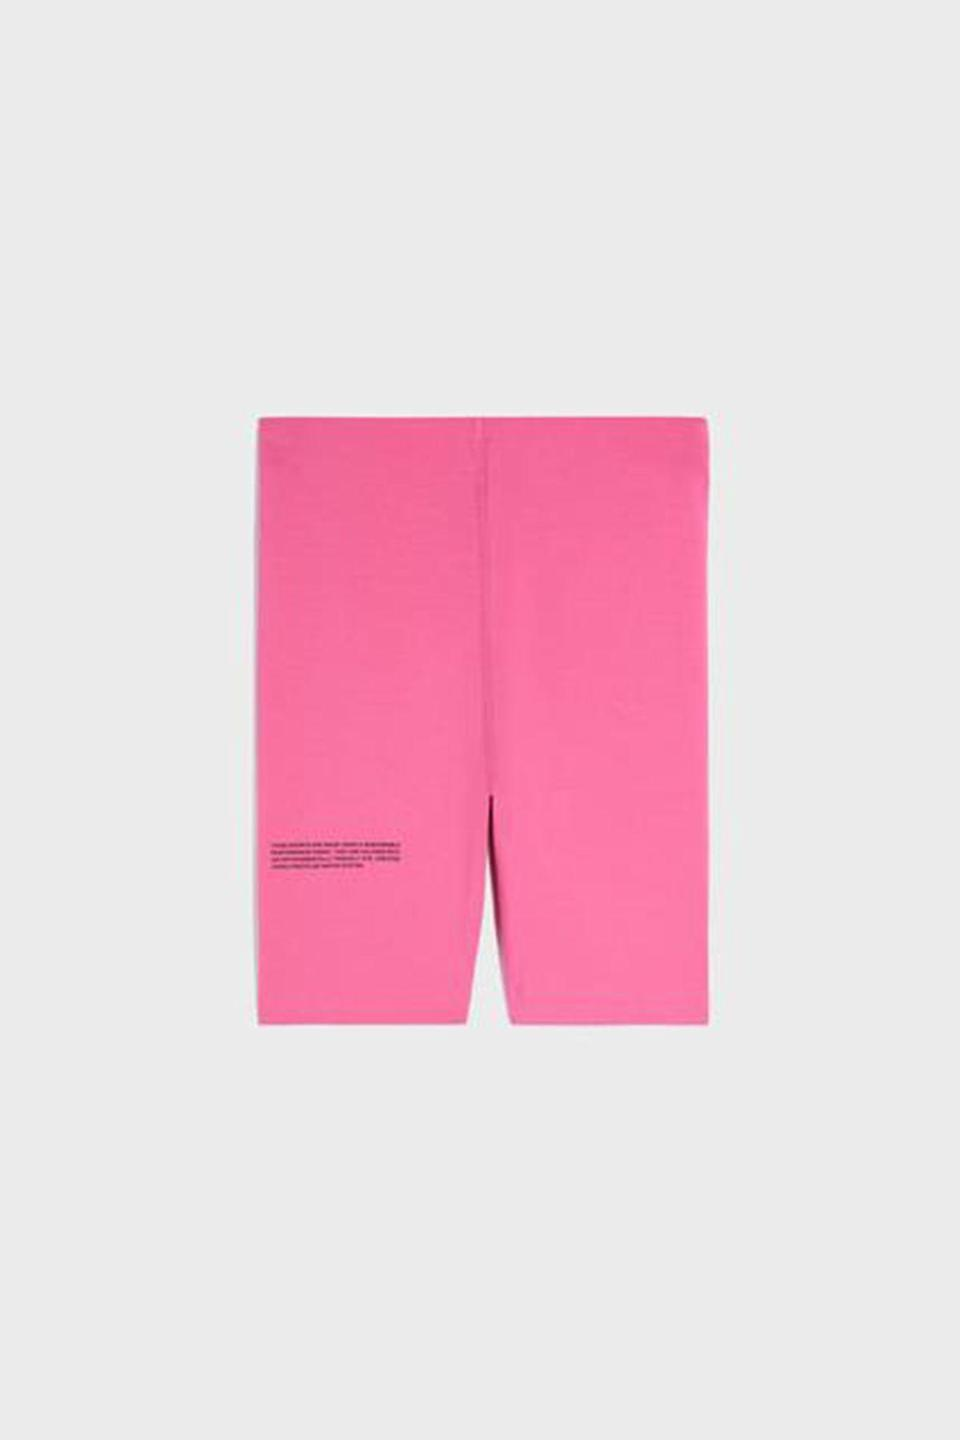 """<p><strong>Pangaia</strong></p><p>thepangaia.com</p><p><strong>$65.00</strong></p><p><a href=""""https://thepangaia.com/collections/move/products/move-biker-shorts-flamingo-pink"""" rel=""""nofollow noopener"""" target=""""_blank"""" data-ylk=""""slk:Shop Now"""" class=""""link rapid-noclick-resp"""">Shop Now</a></p><p>Pangaia designs textile innovations for a better future. These thoughtful wardrobe essentials are produced using bio-based, recycled fibers made from recycled plastic bottles and natural botanical dyes from plants. </p>"""